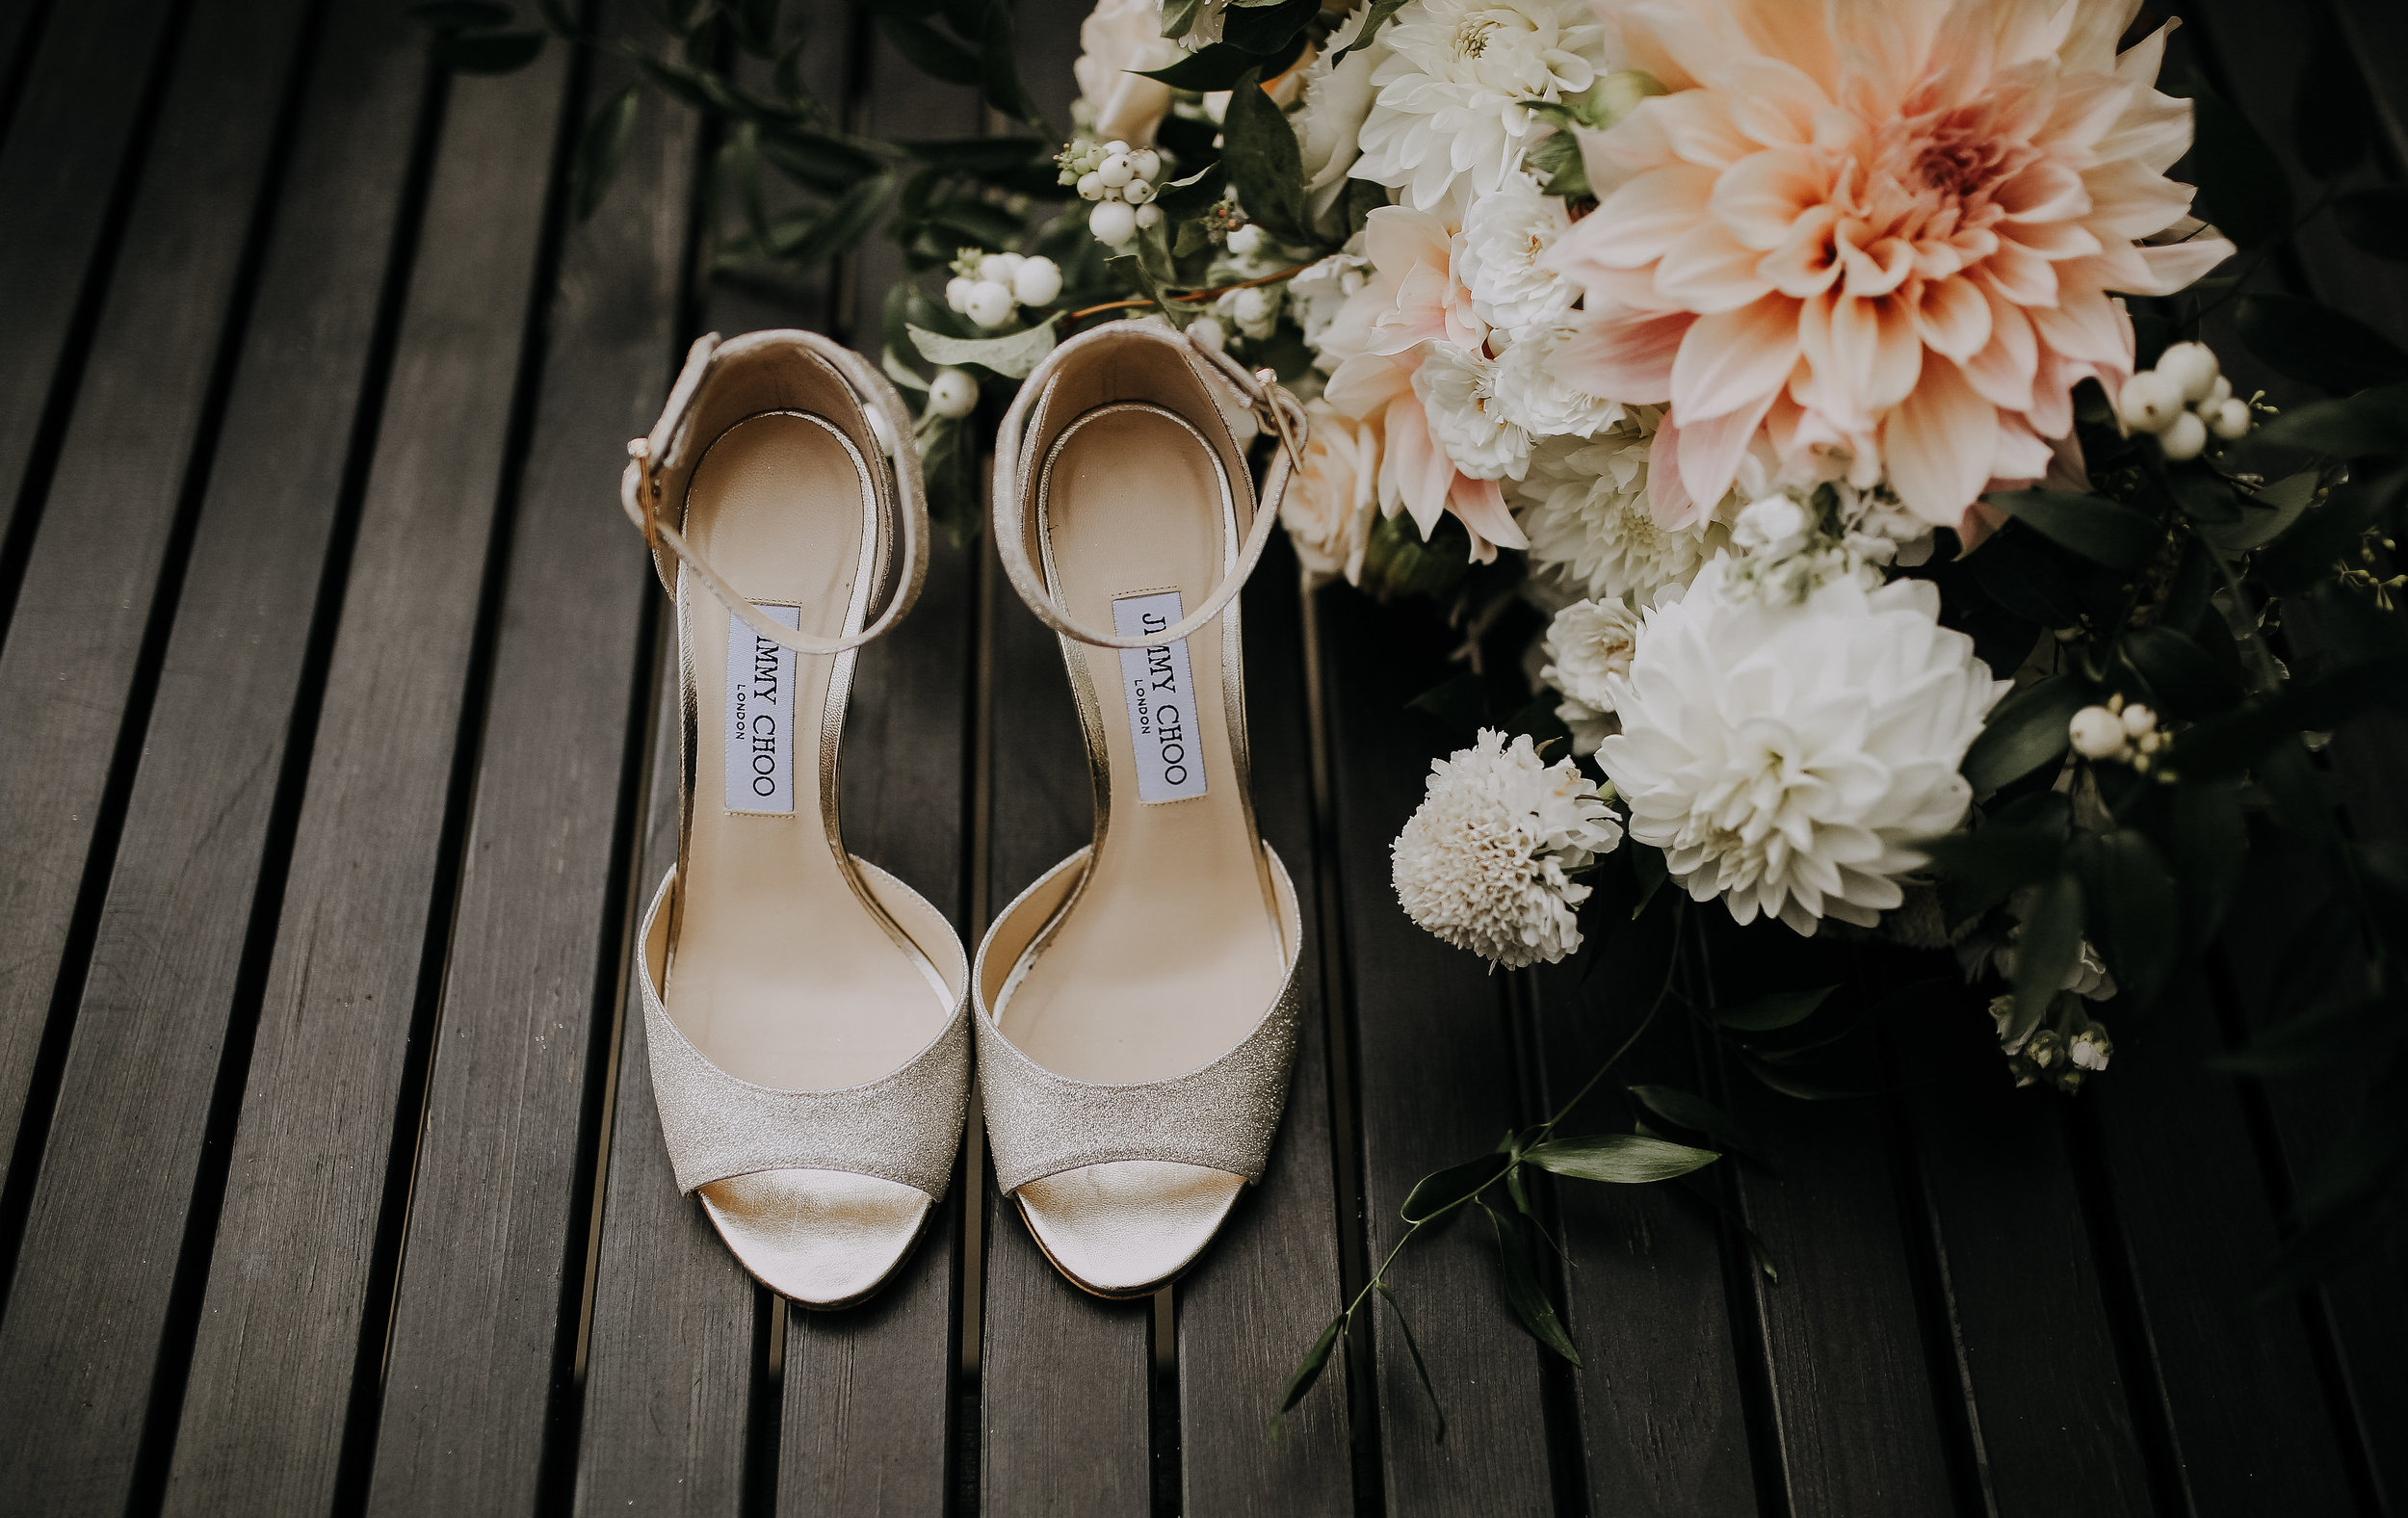 Rachel+Timothy_Wedding_8 (1).jpg